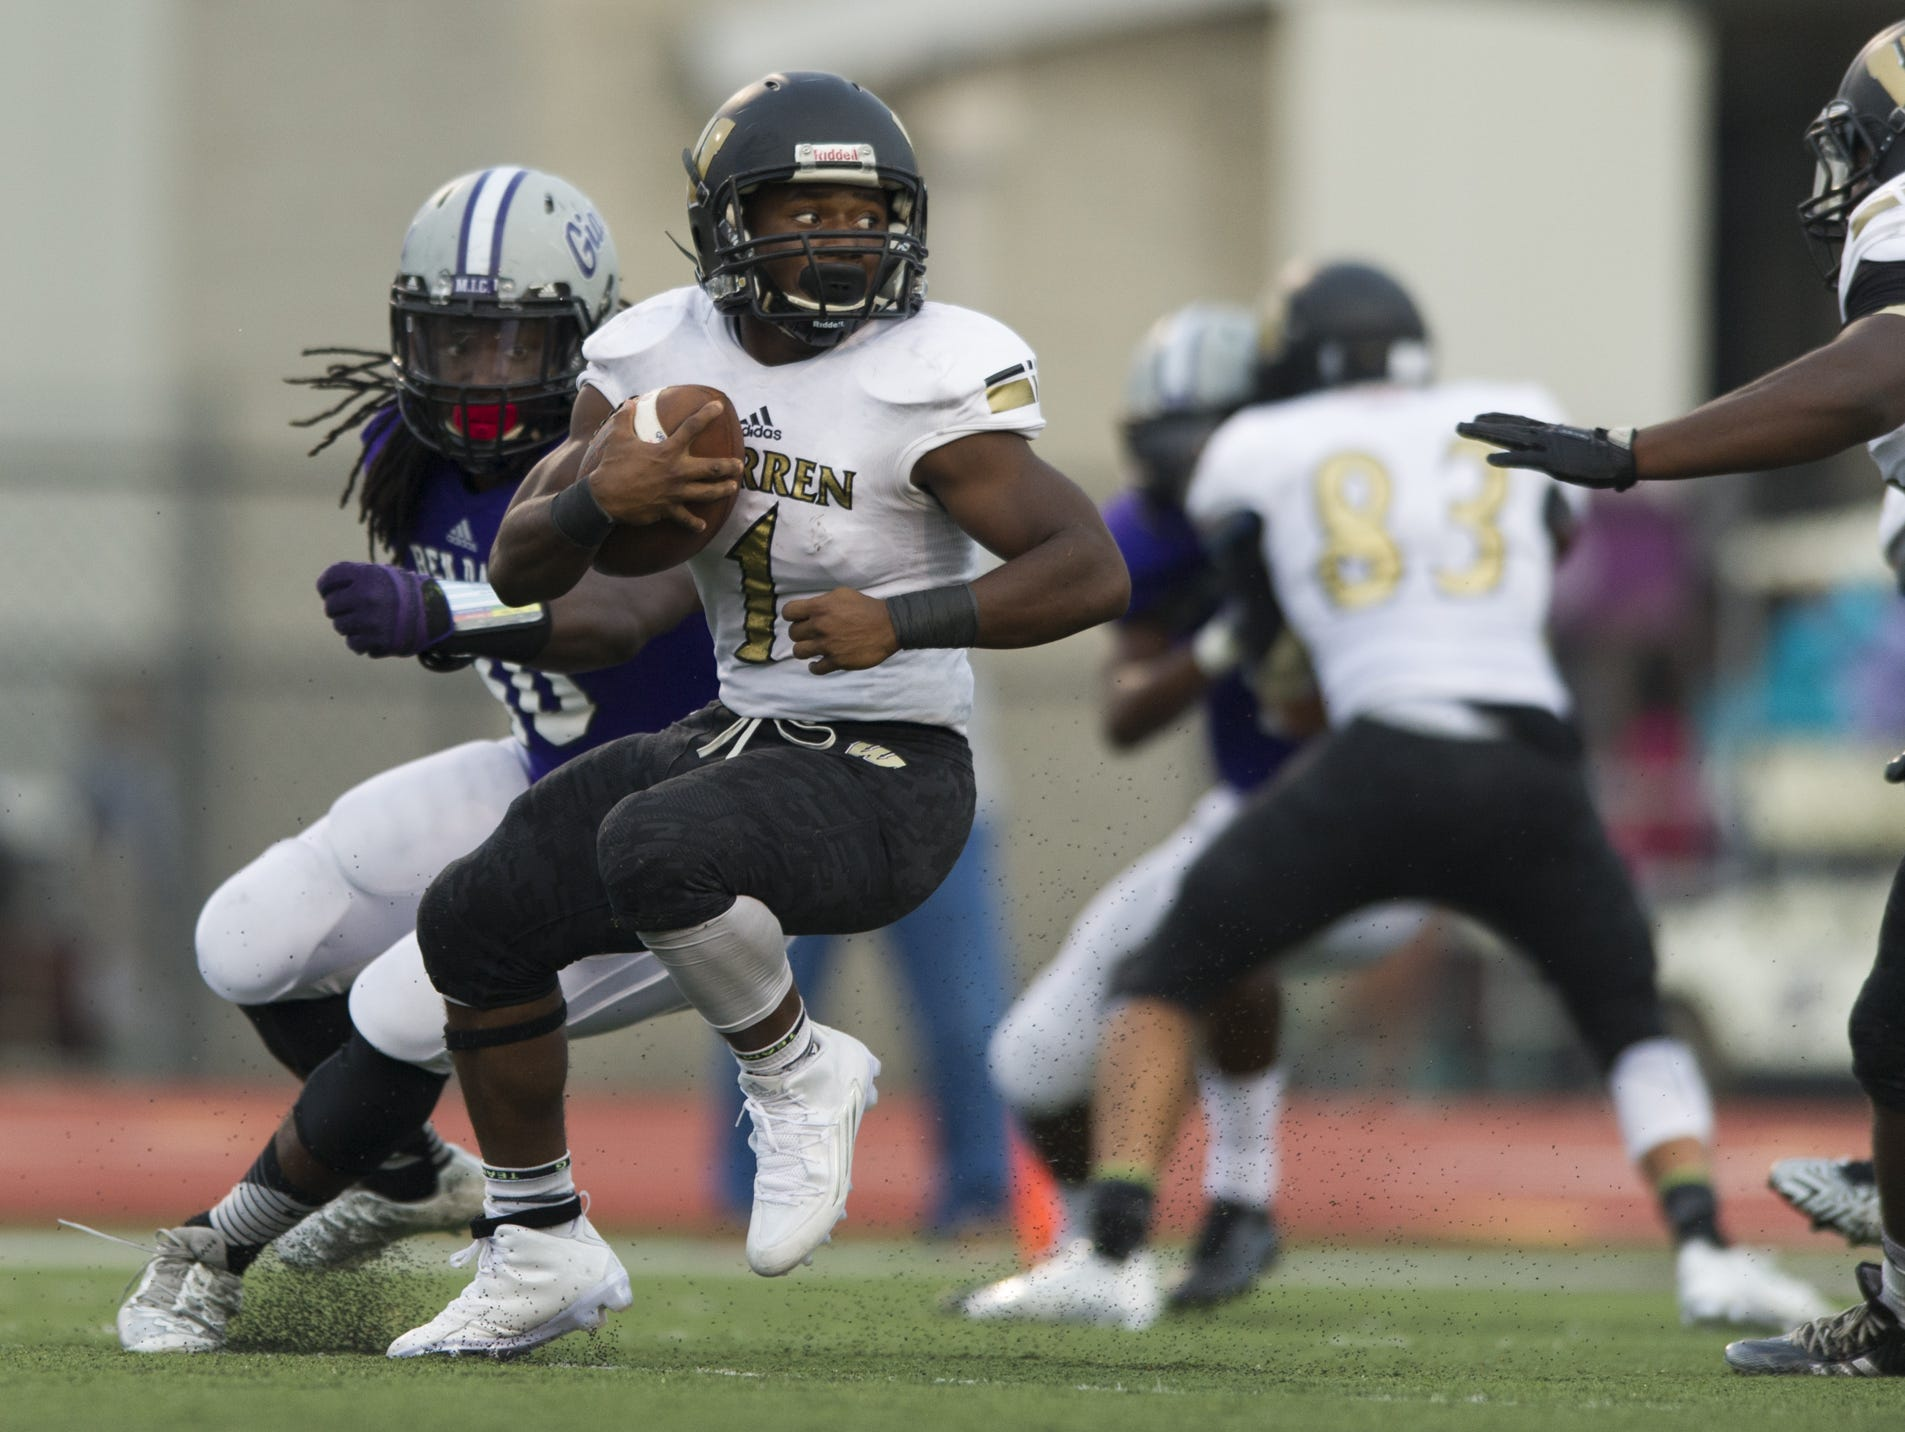 Warren Central High School senior Jaylen Coe (1) changes course in the backfield before being taken down for a loss by the Ben Davis defense during first-half action of a IHSAA varsity football game at Ben Davis High School, Friday, September 18, 2015.